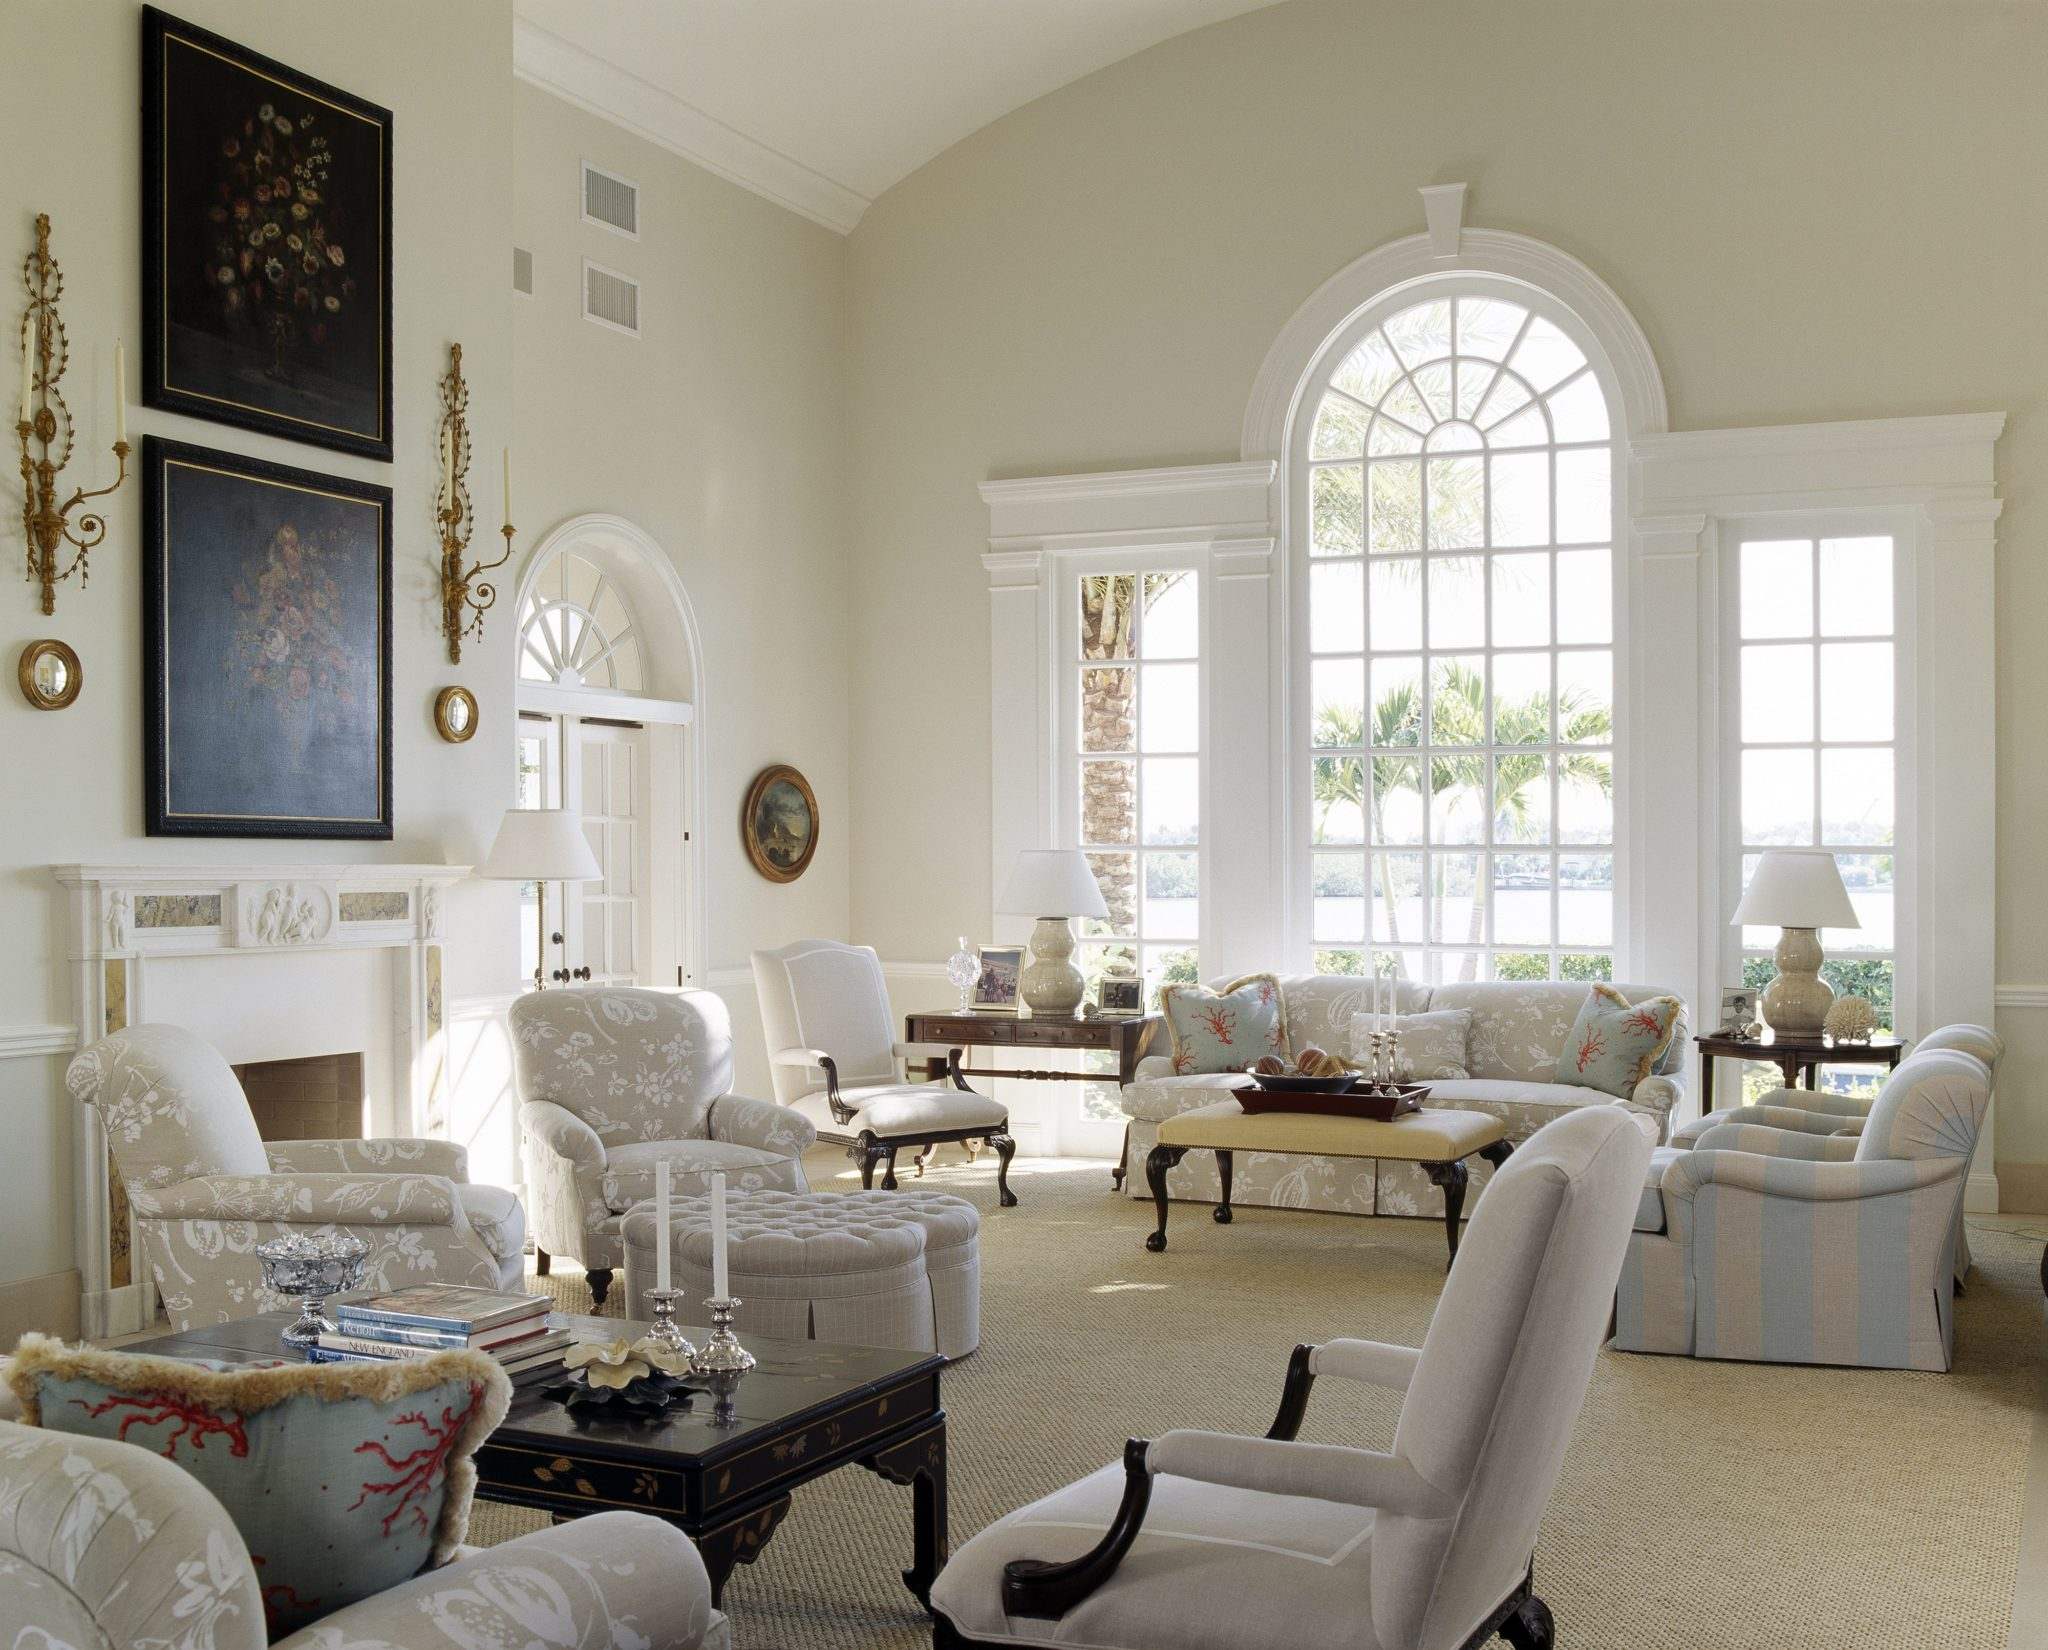 In this grand Vero Beach living room, design firm Gauthier~Stacy Inc. used linen fabrics and a sisal rug to relax the formality of the classical architecture. The window was left without drapery to allow natural light to stream in.